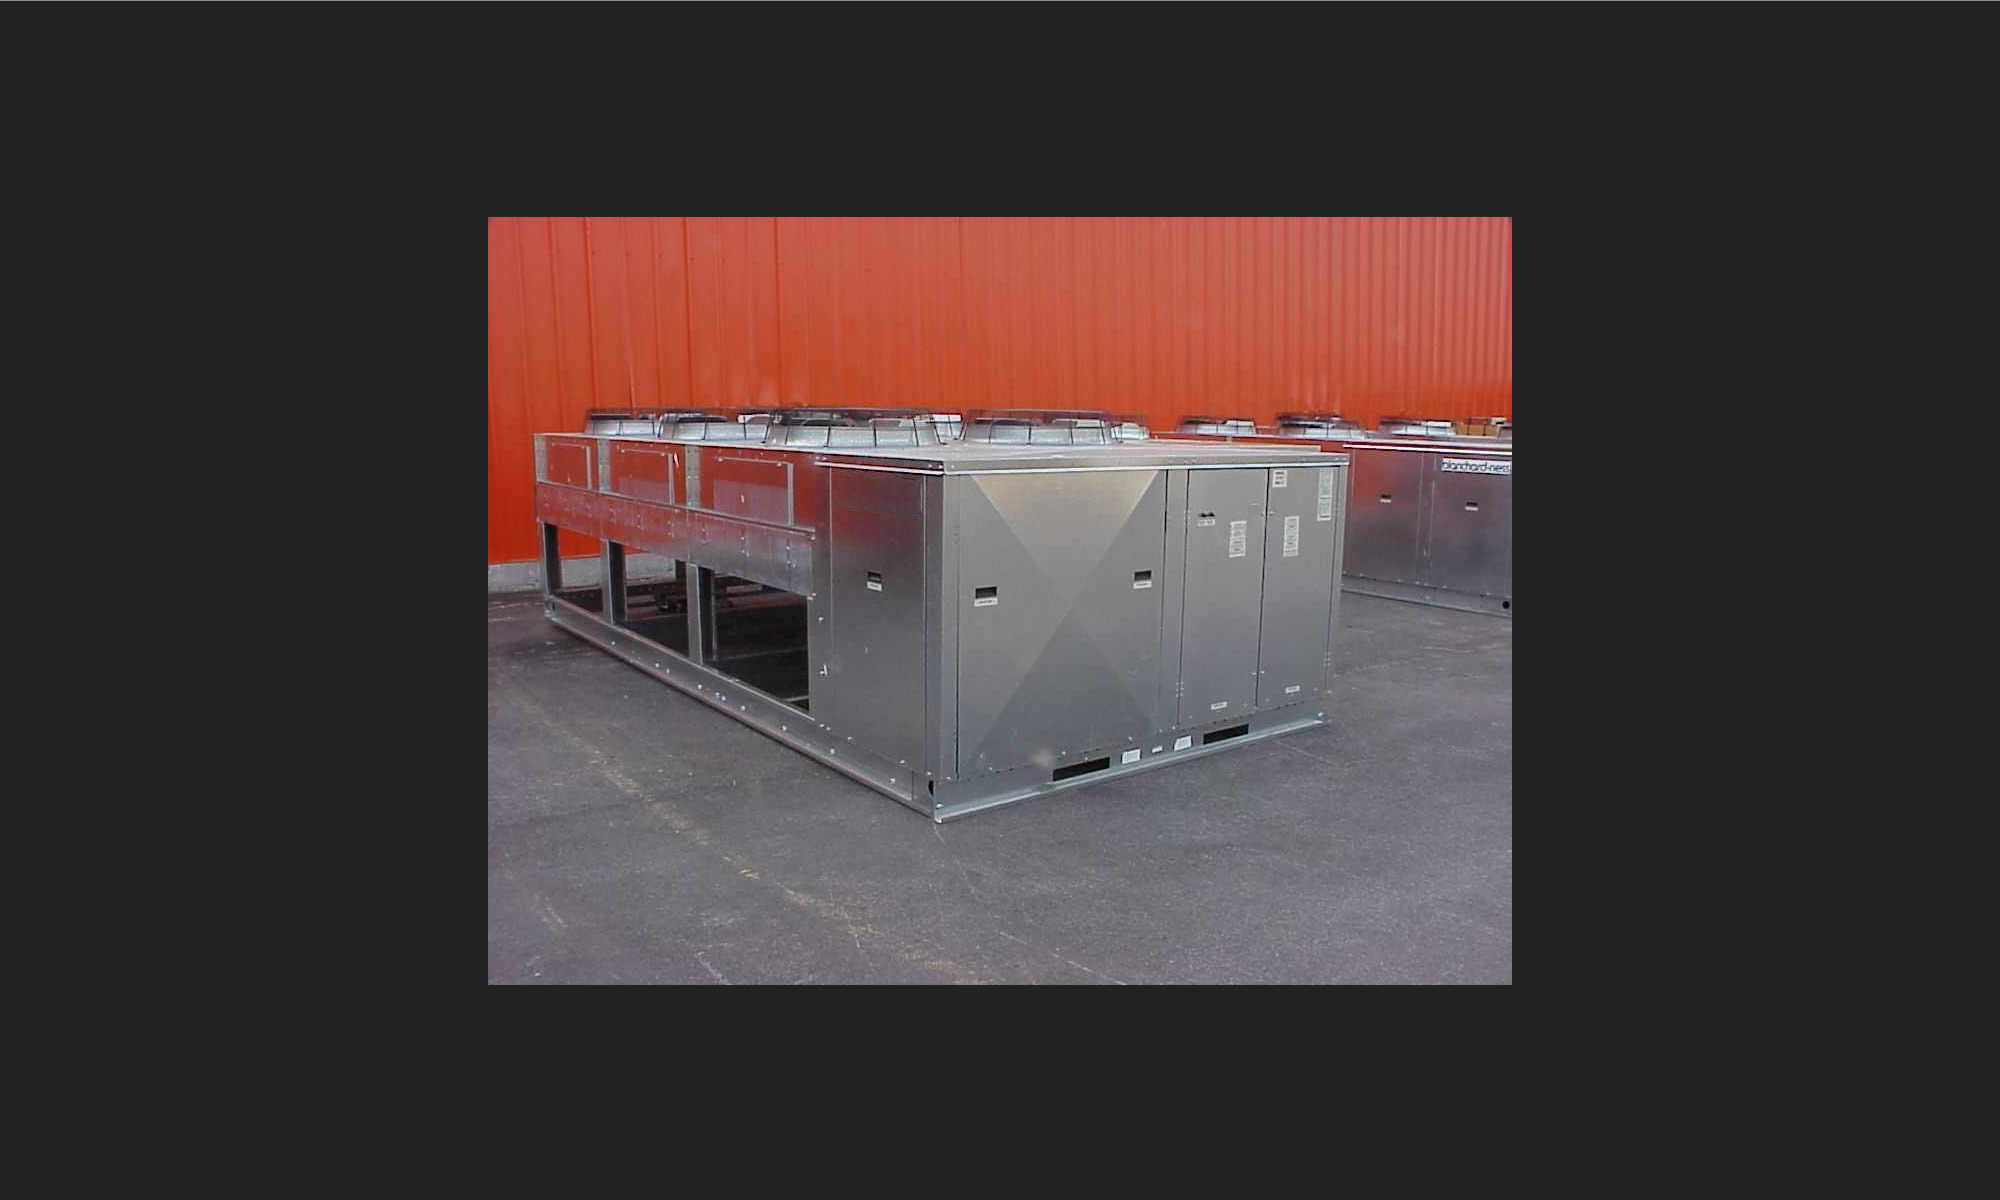 Outdoor Air Cooled Central Chillers